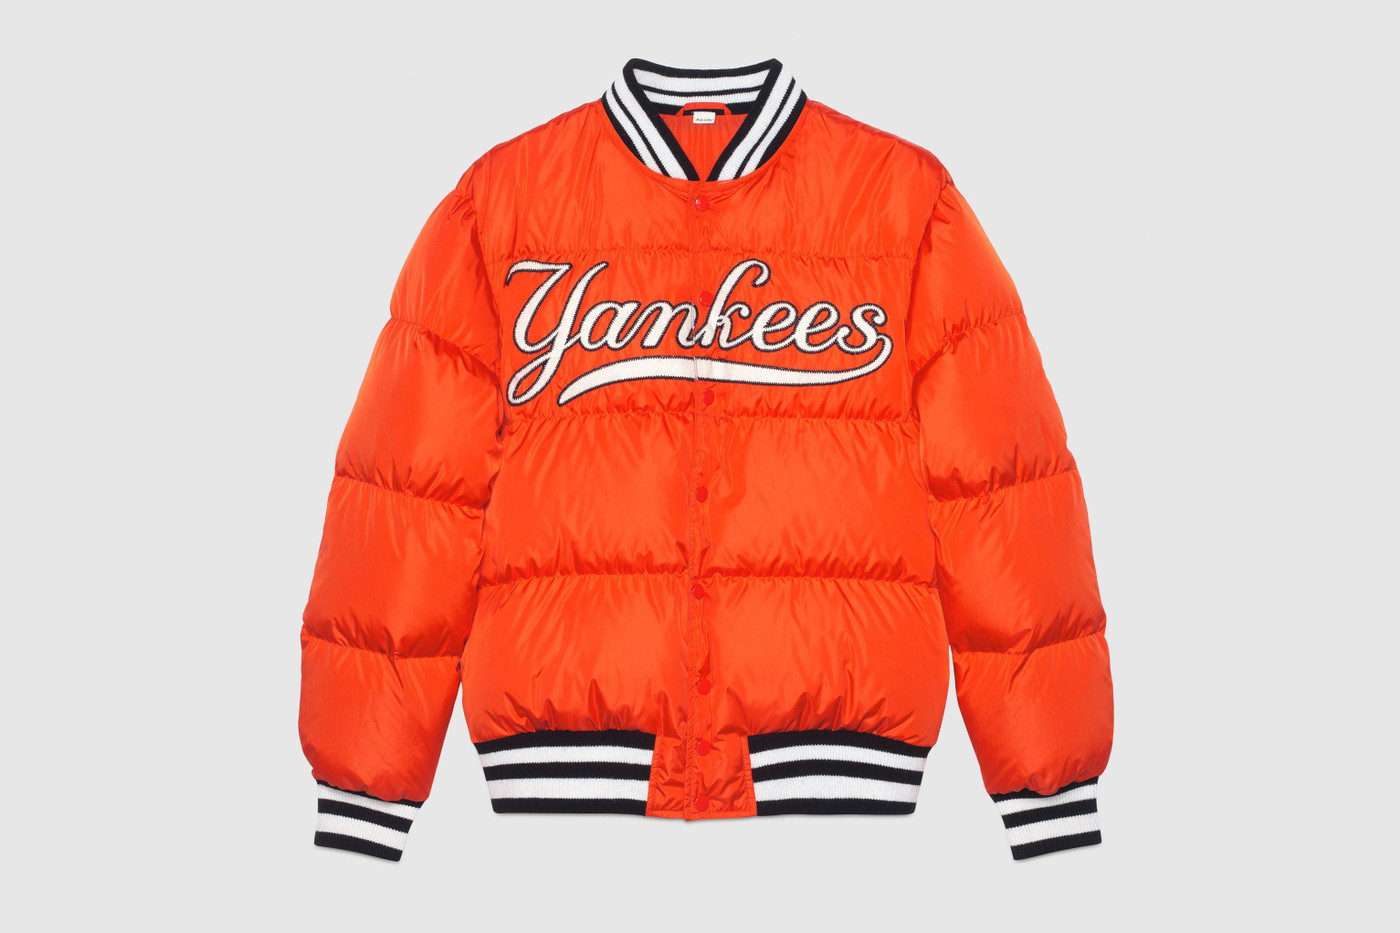 yankees-gucci-apparel-3 – Copy